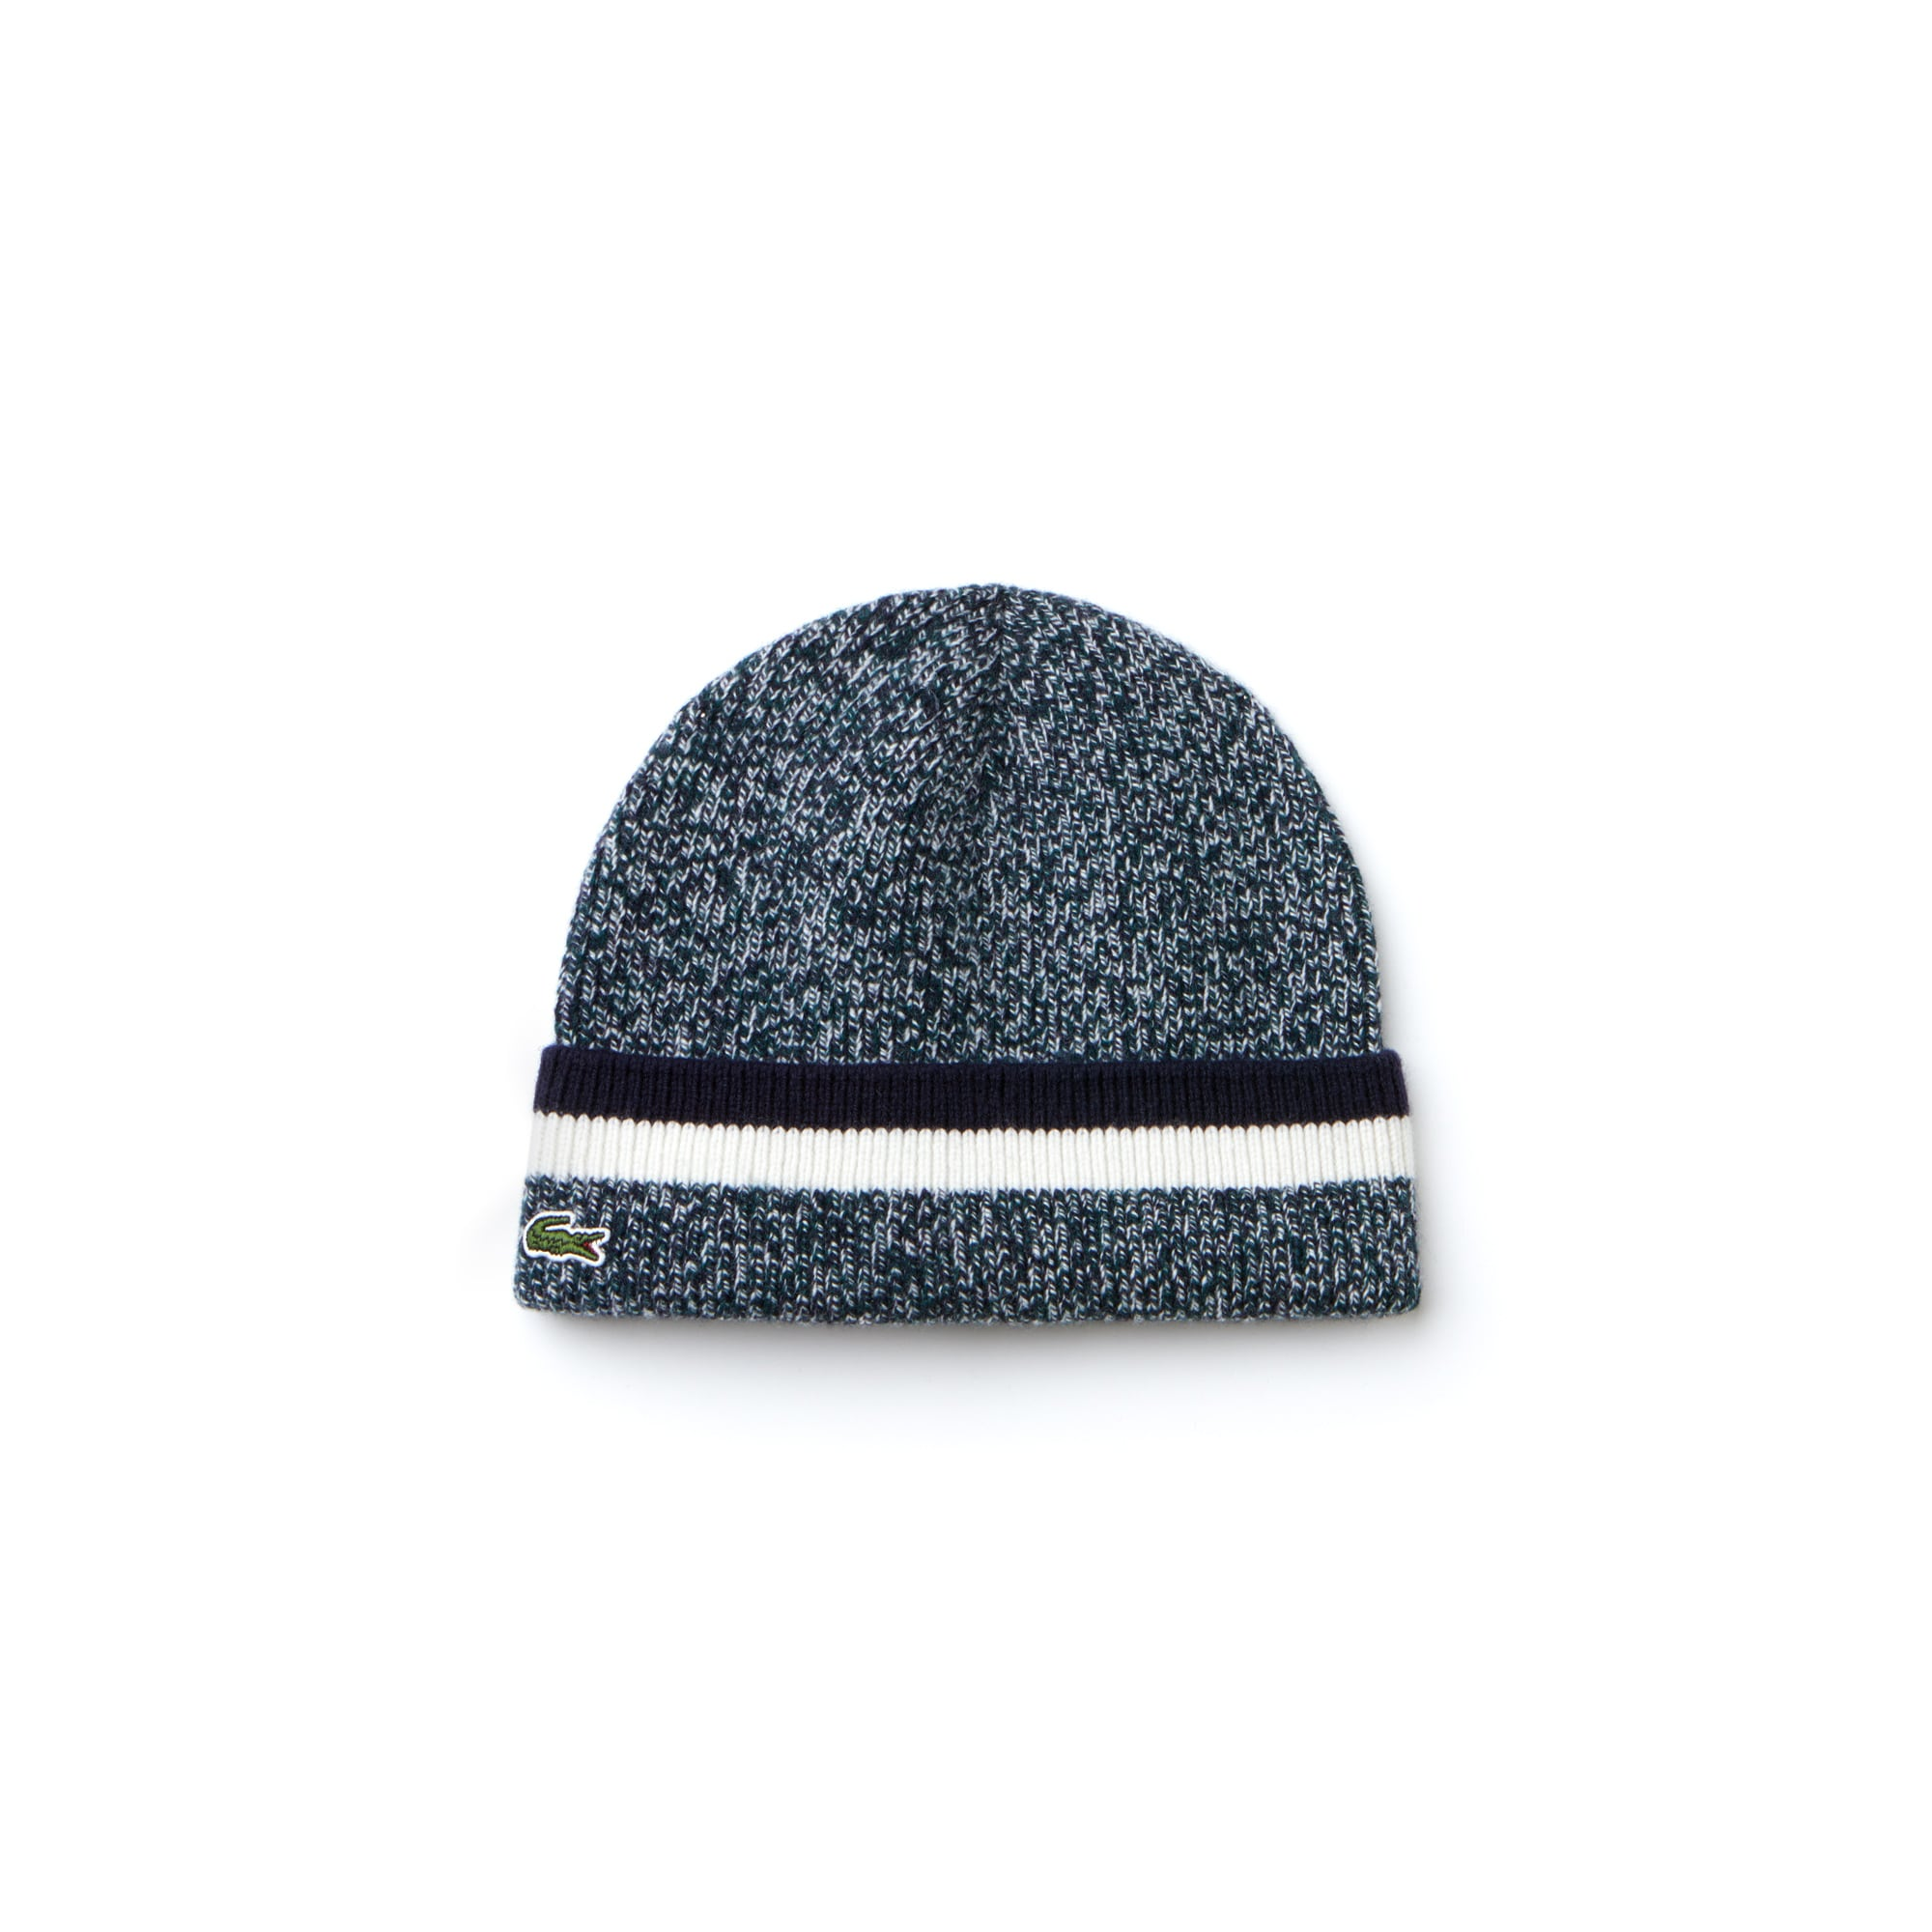 Men's Made In France Turned Edge Mouliné Ribbed Wool Beanie